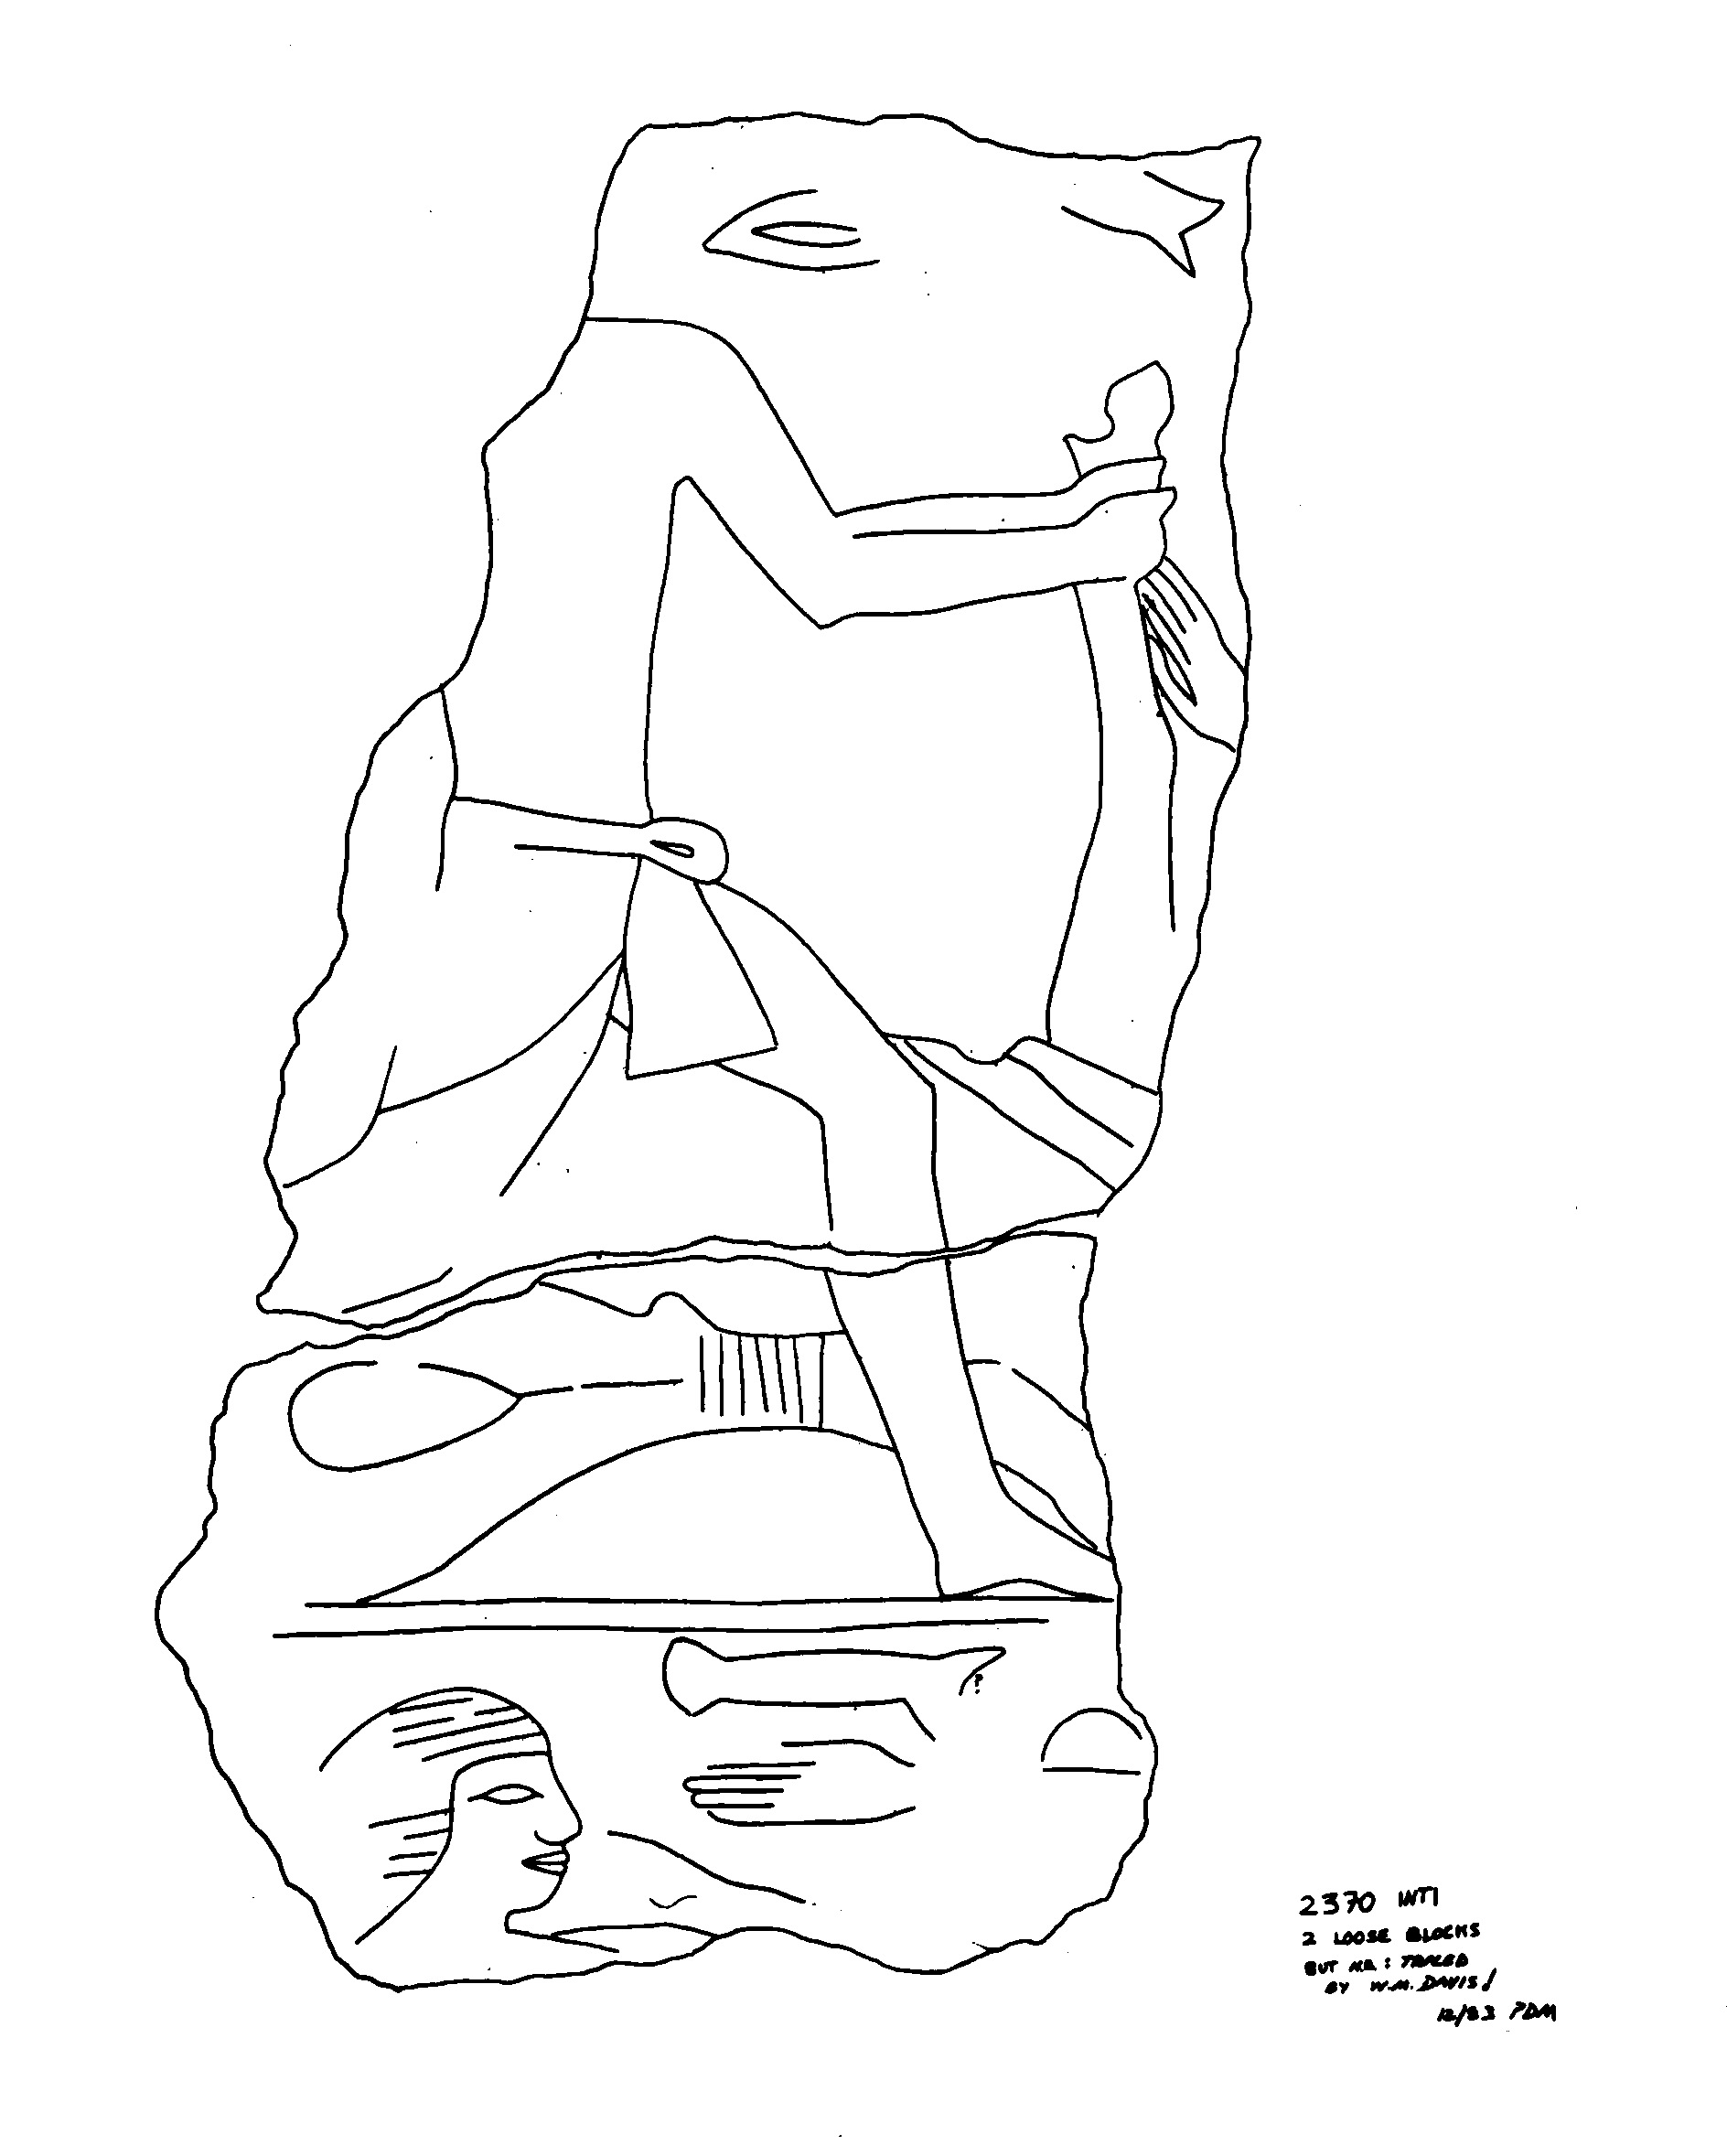 Drawings: G 2370: relief from two loose blocks